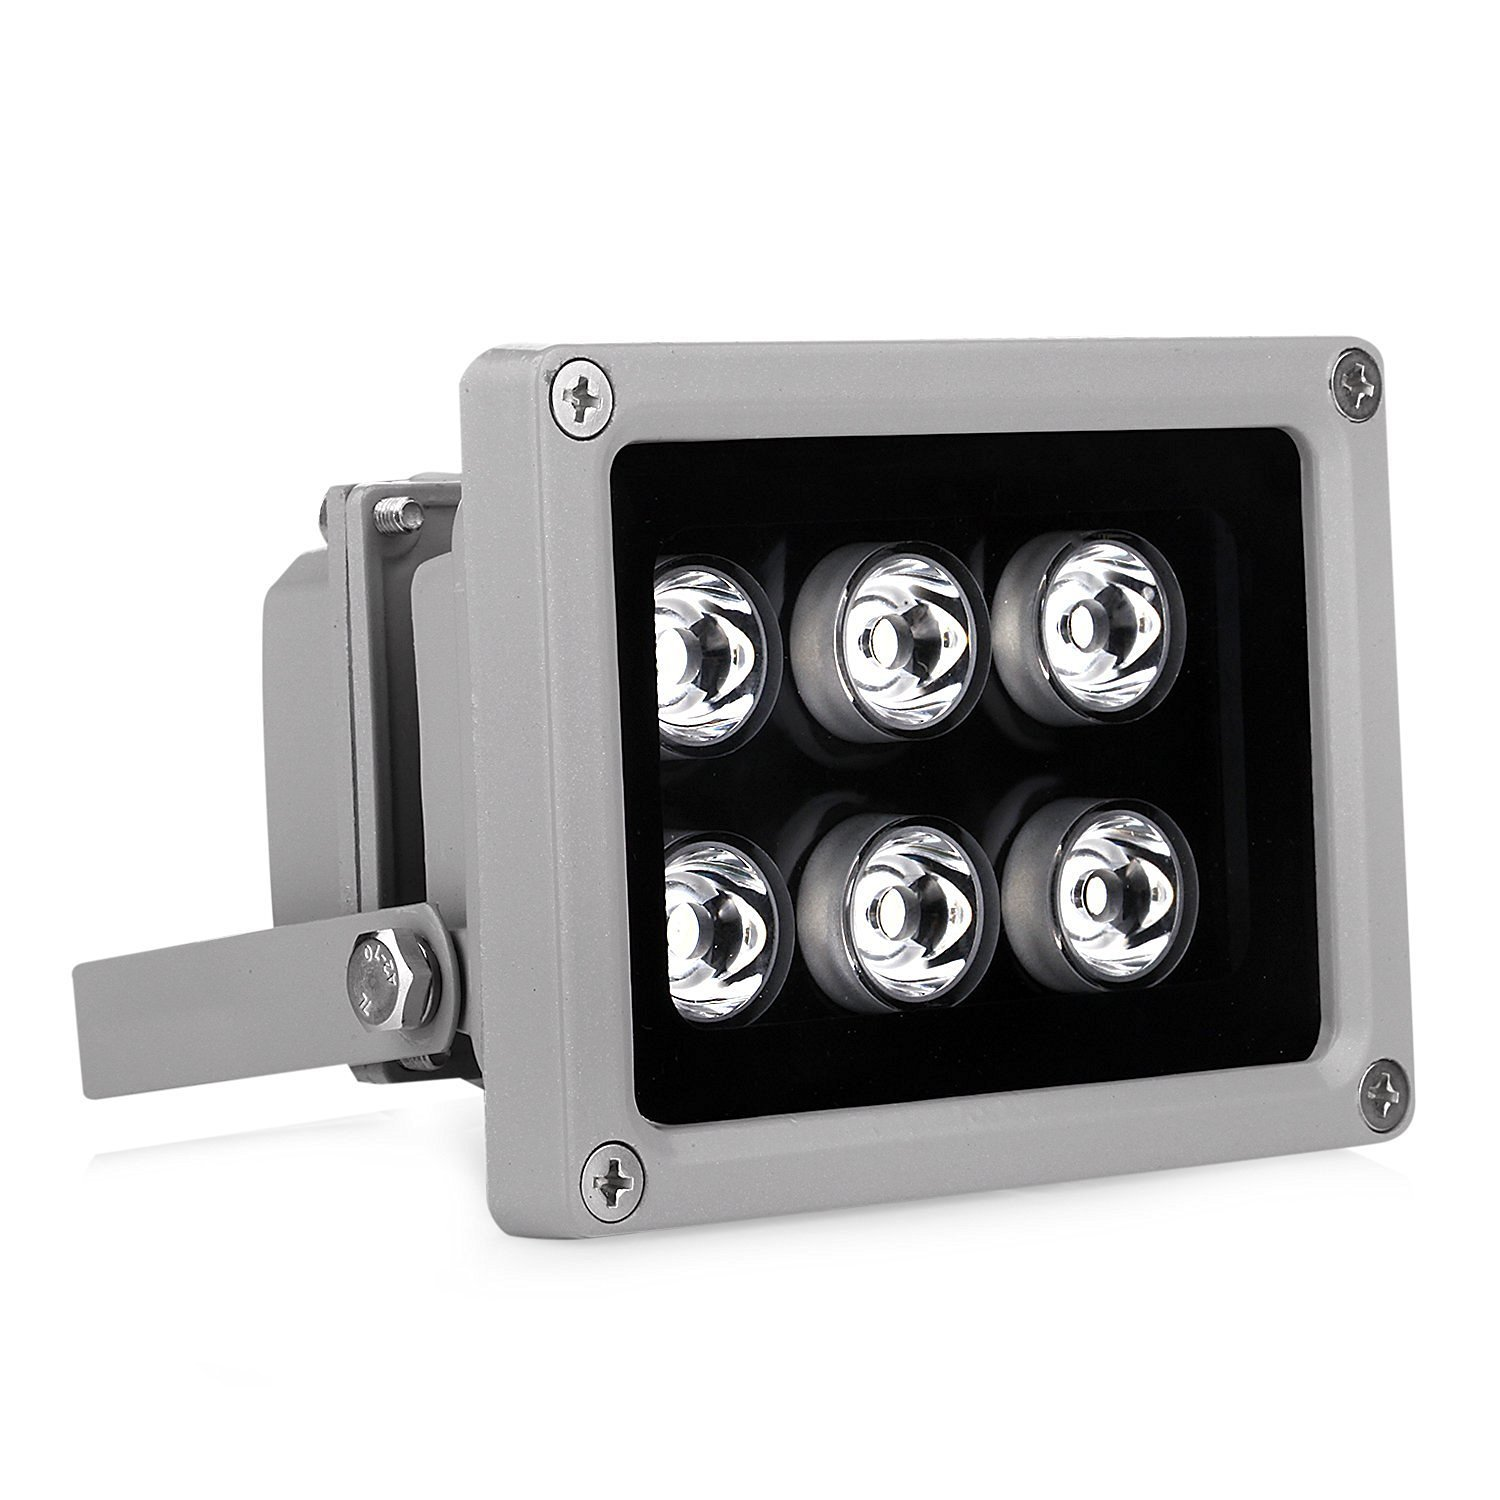 VIKYLIN IR Illuminator 850nm 6 Leds 90 Degrees Wide Angle IP67 for CCTV Security Camera by VIKYLIN